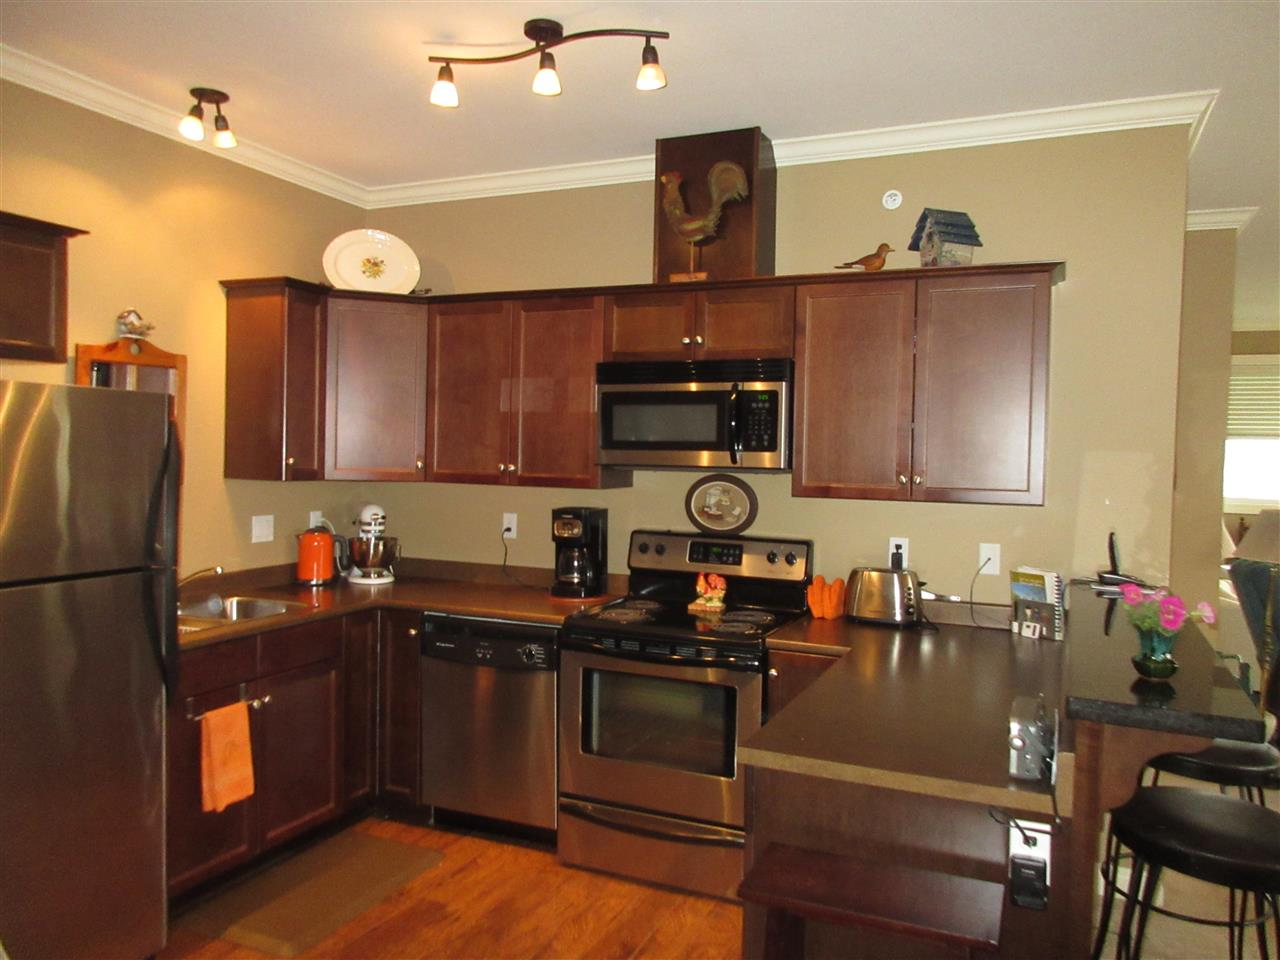 "Photo 4: 303 46053 CHILLIWACK CENTRAL Road in Chilliwack: Chilliwack E Young-Yale Condo for sale in ""The Tuscany"" : MLS(r) # R2175379"